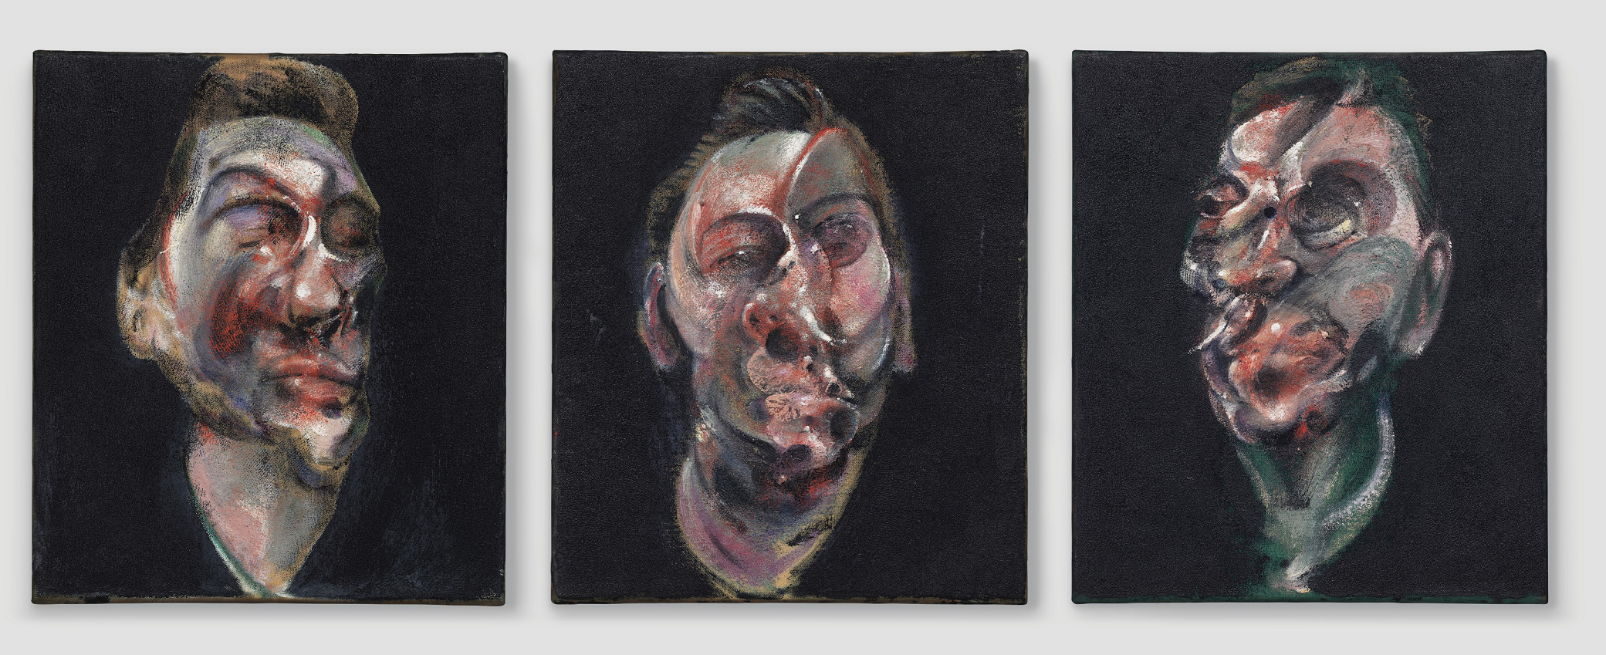 francis bacon Three Studies for a Portrait of George Dyer Christie's